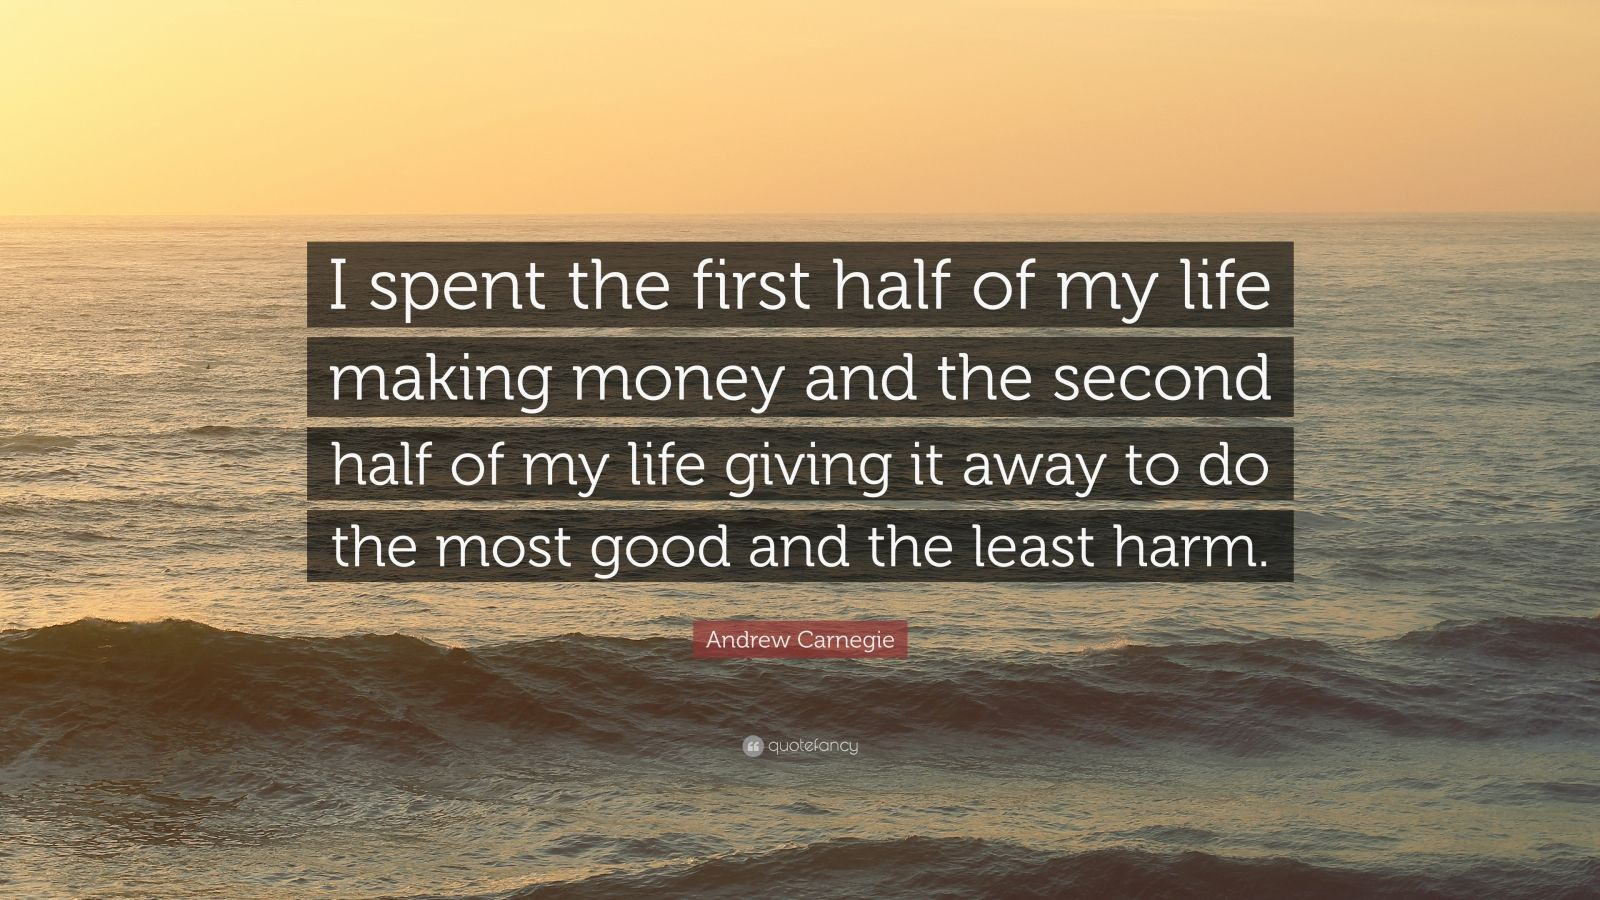 """Andrew Carnegie Quote: """"I spent the first half of my life making money and the second half of my life giving it away to do the most good and the least harm."""""""